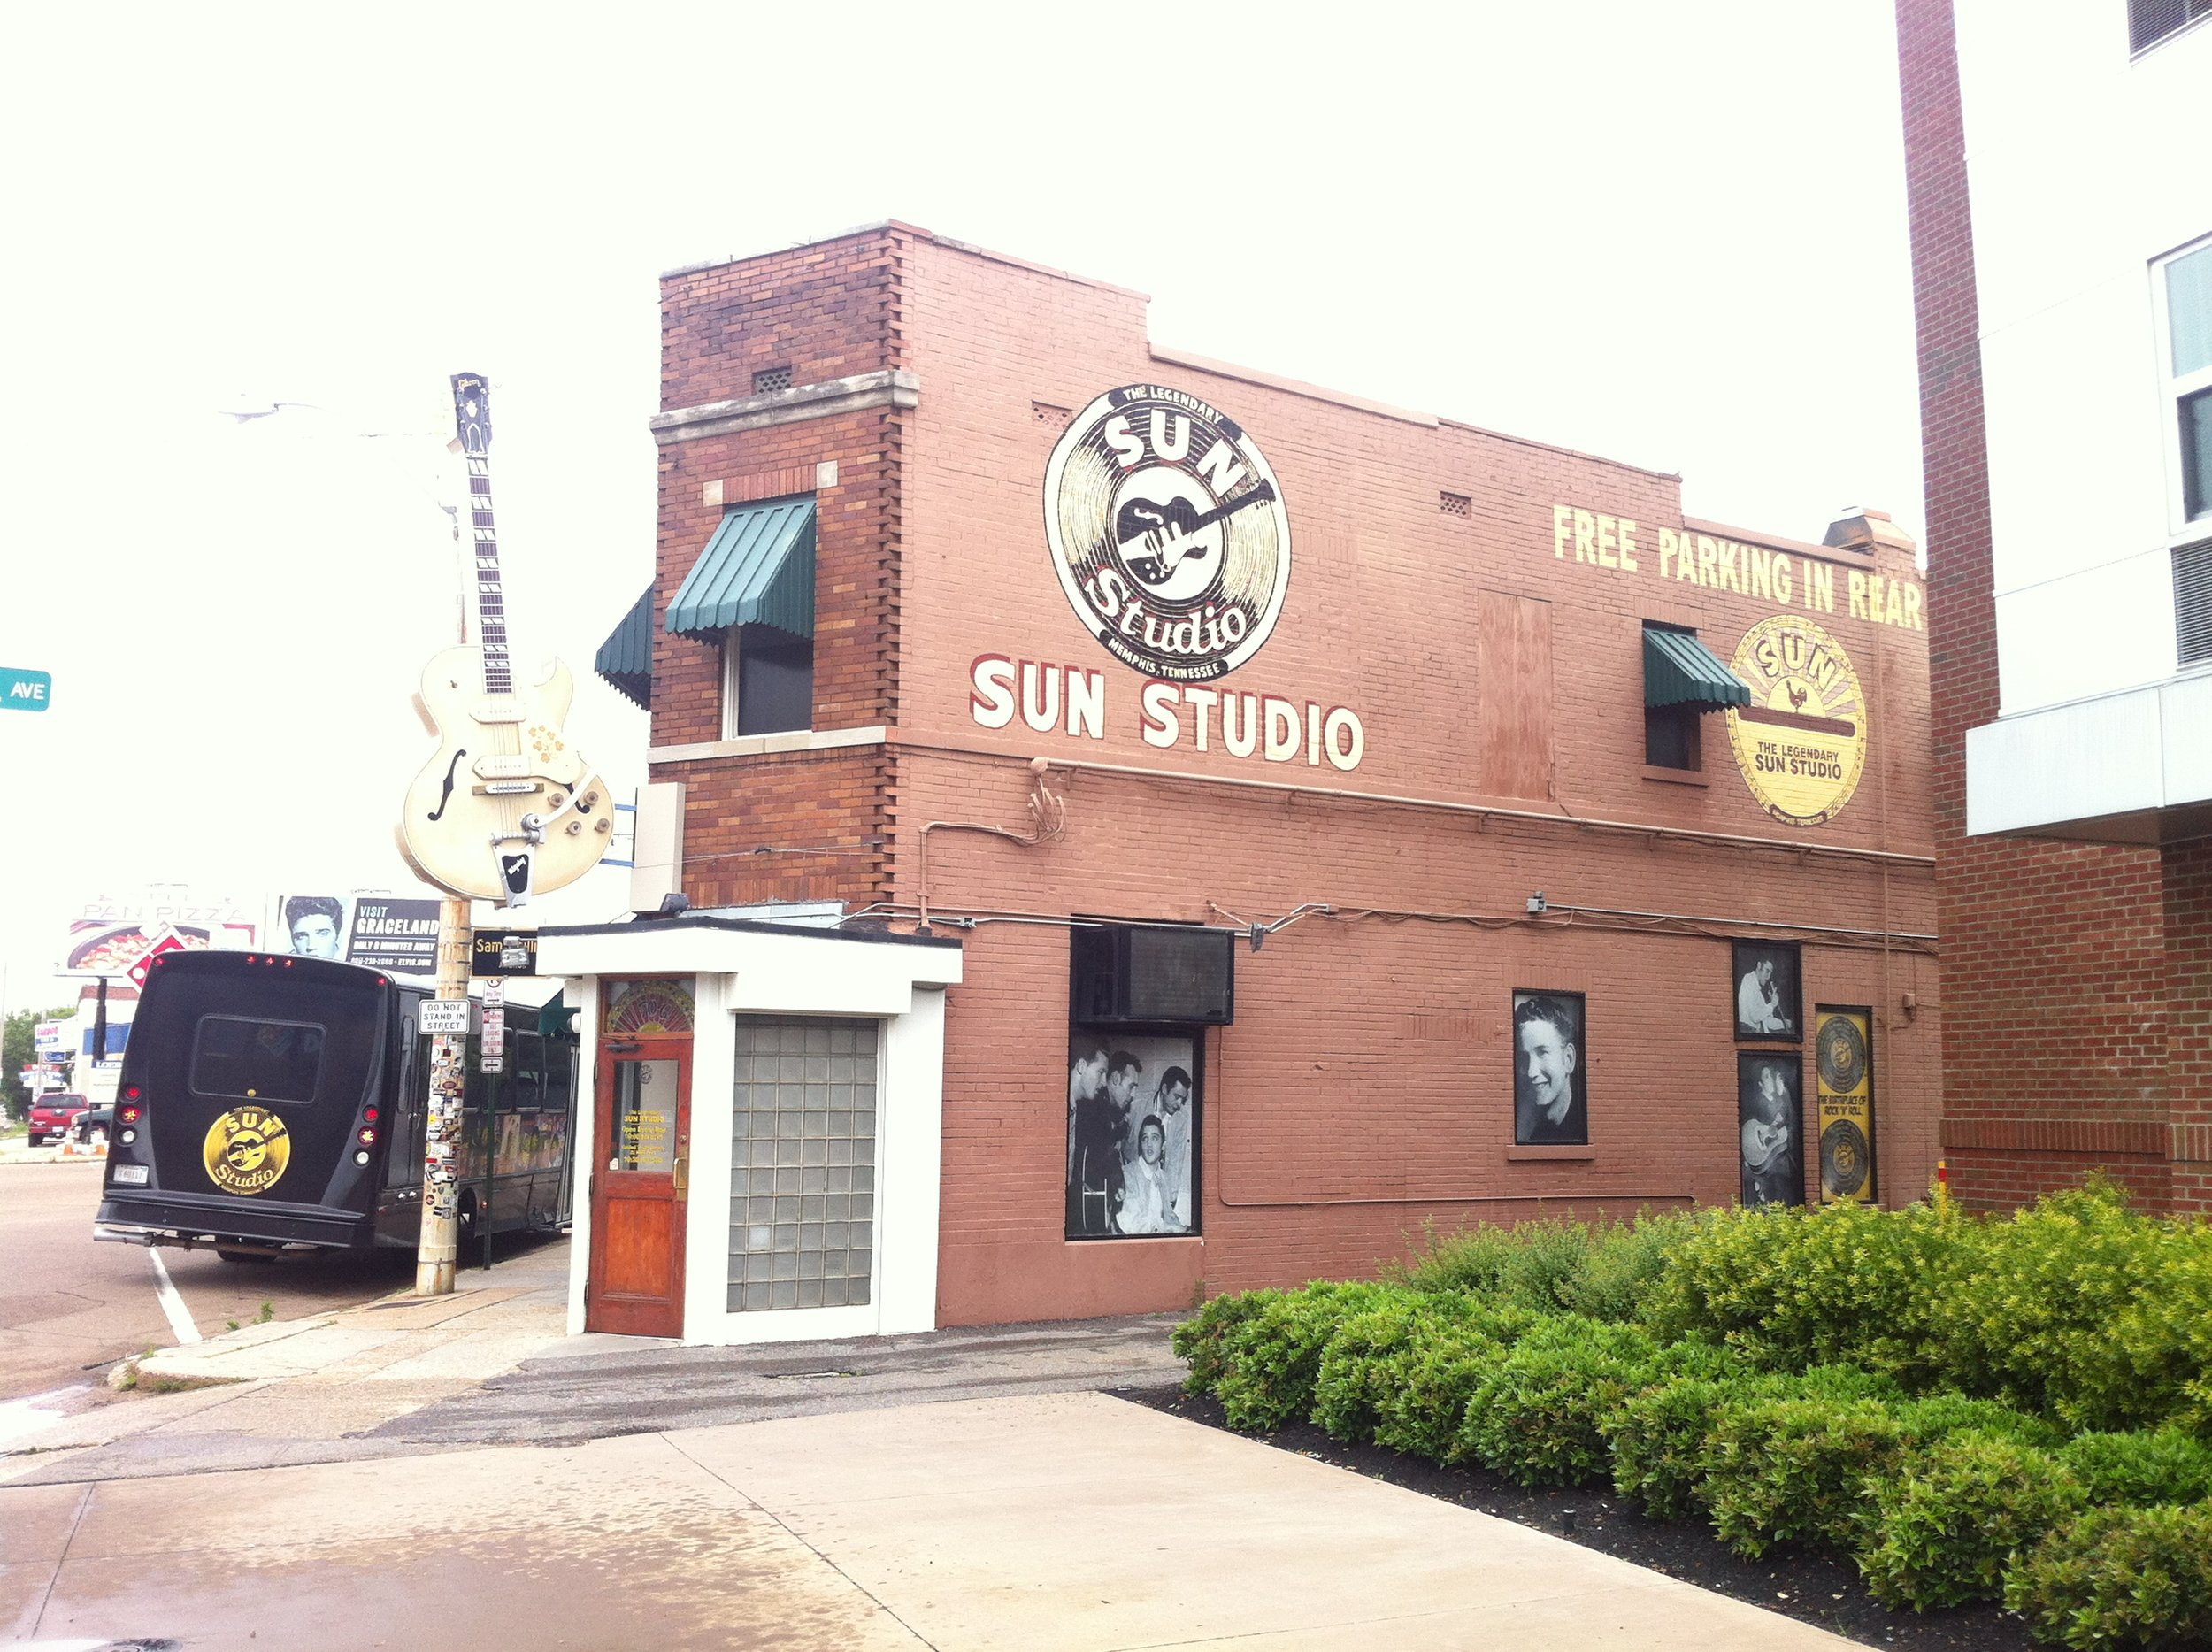 SunStudio: The birthplace of Rock & Roll